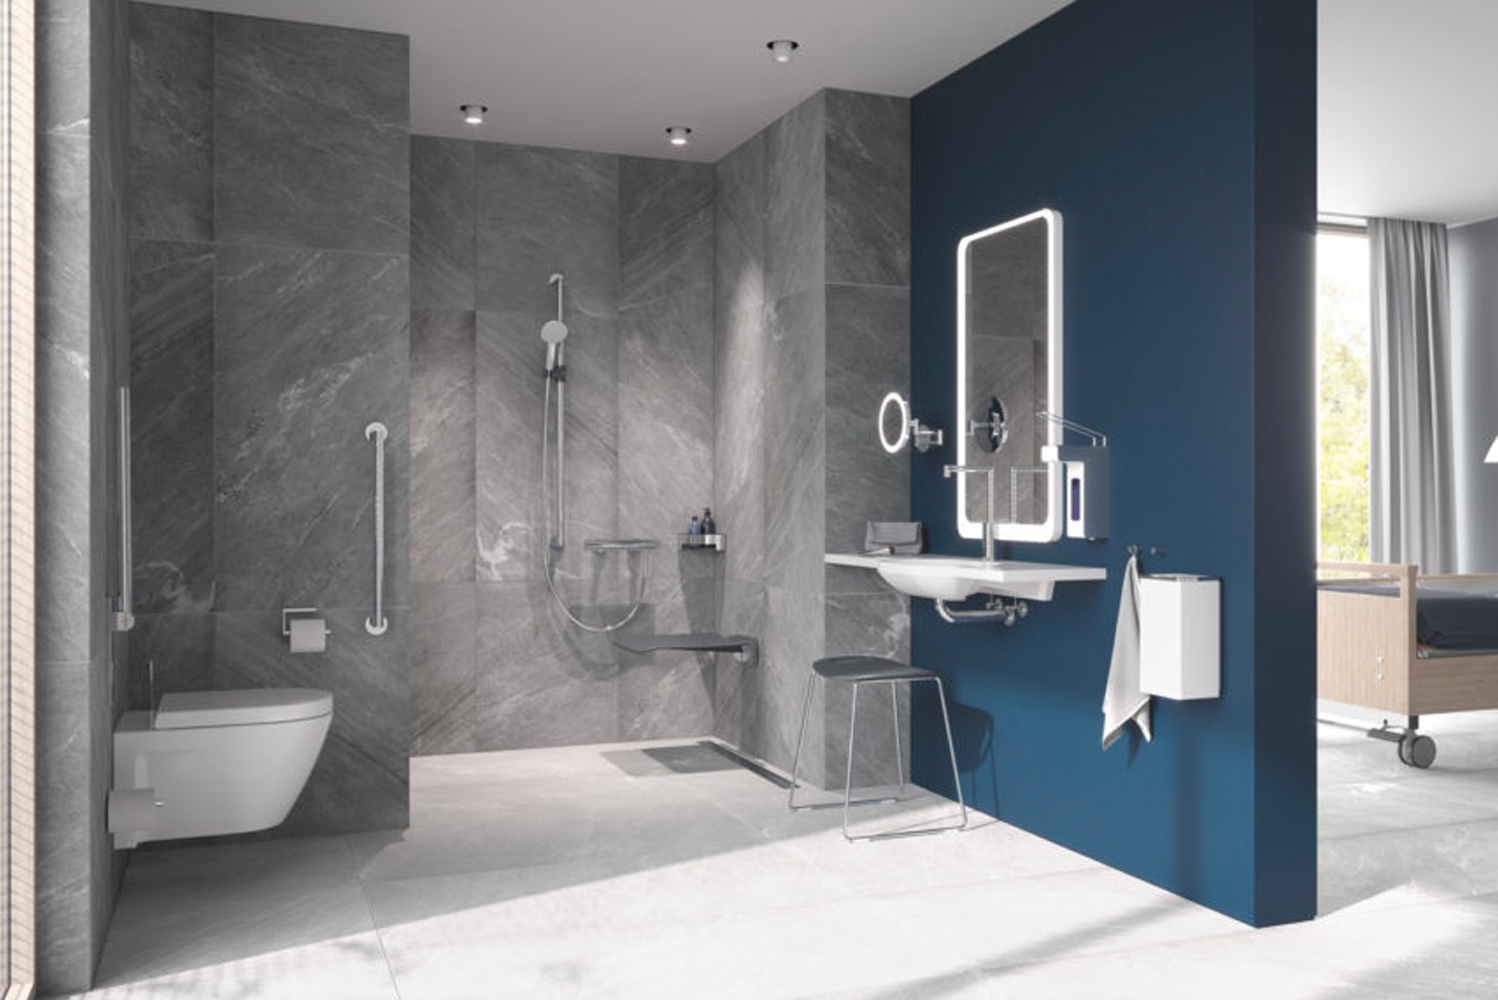 Comprised of fold-down shower seats and fold-down/out support rails, System 900 enhances accessibility.